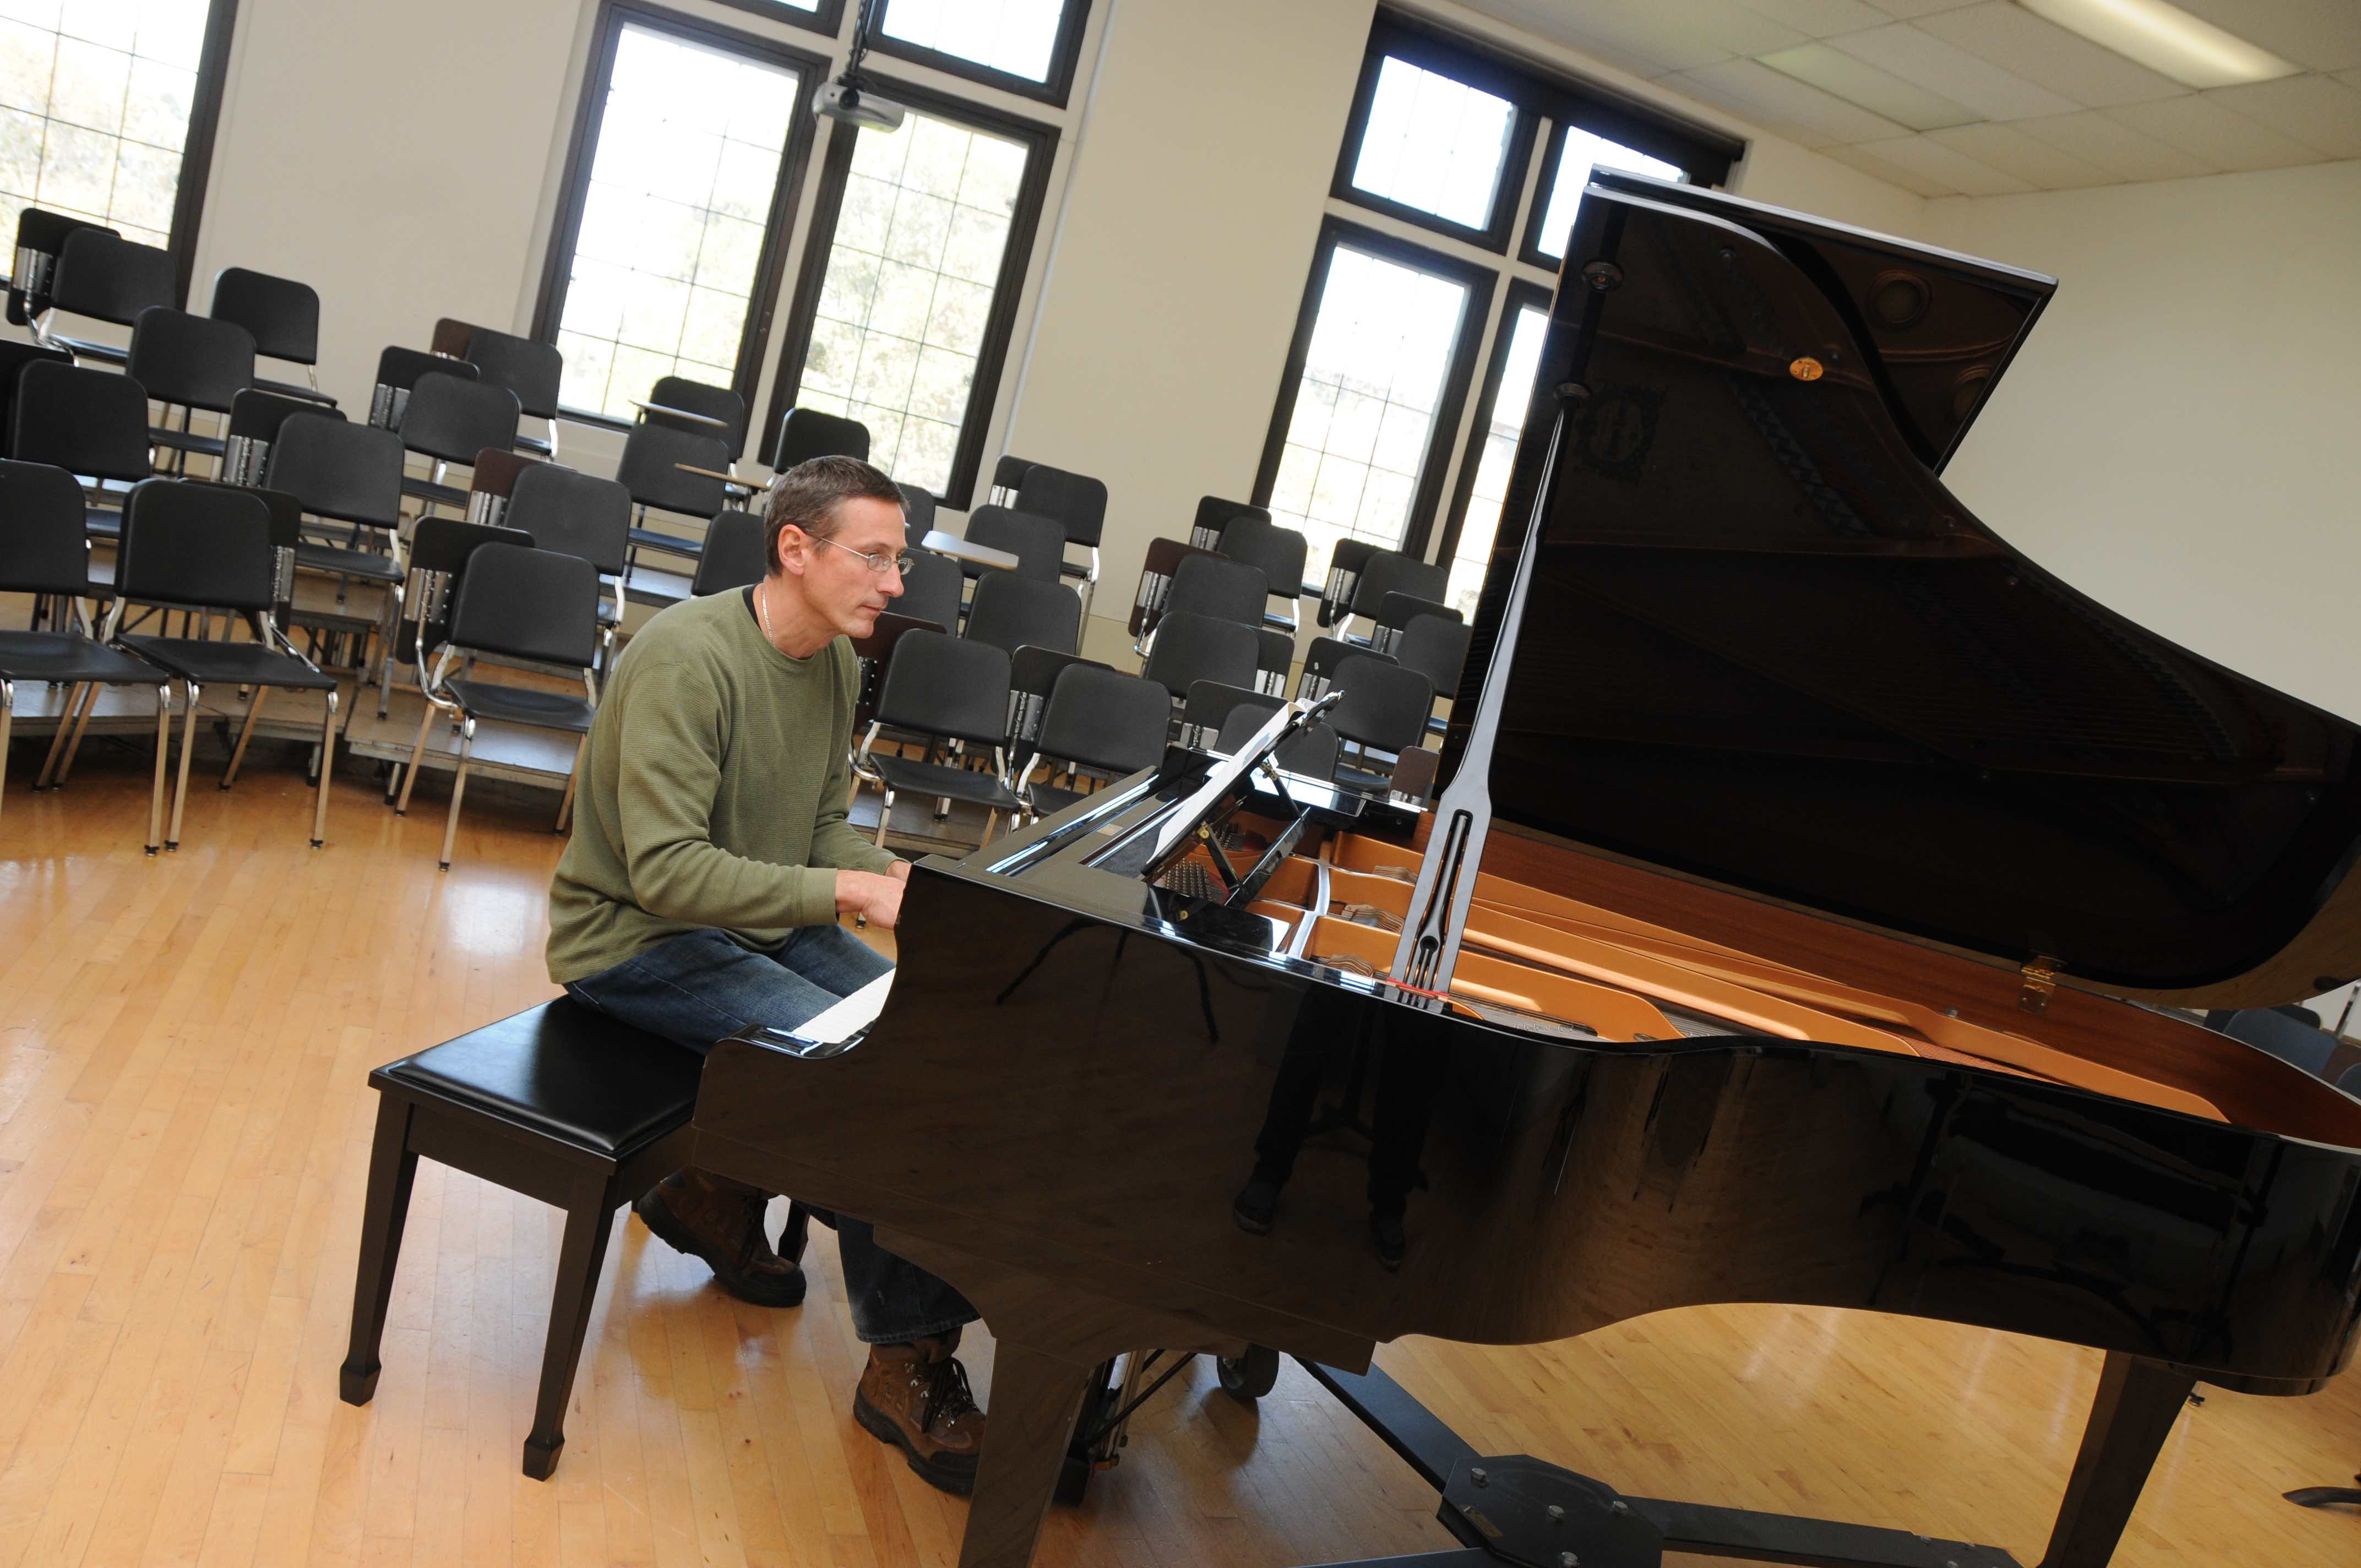 Martin playing the piano